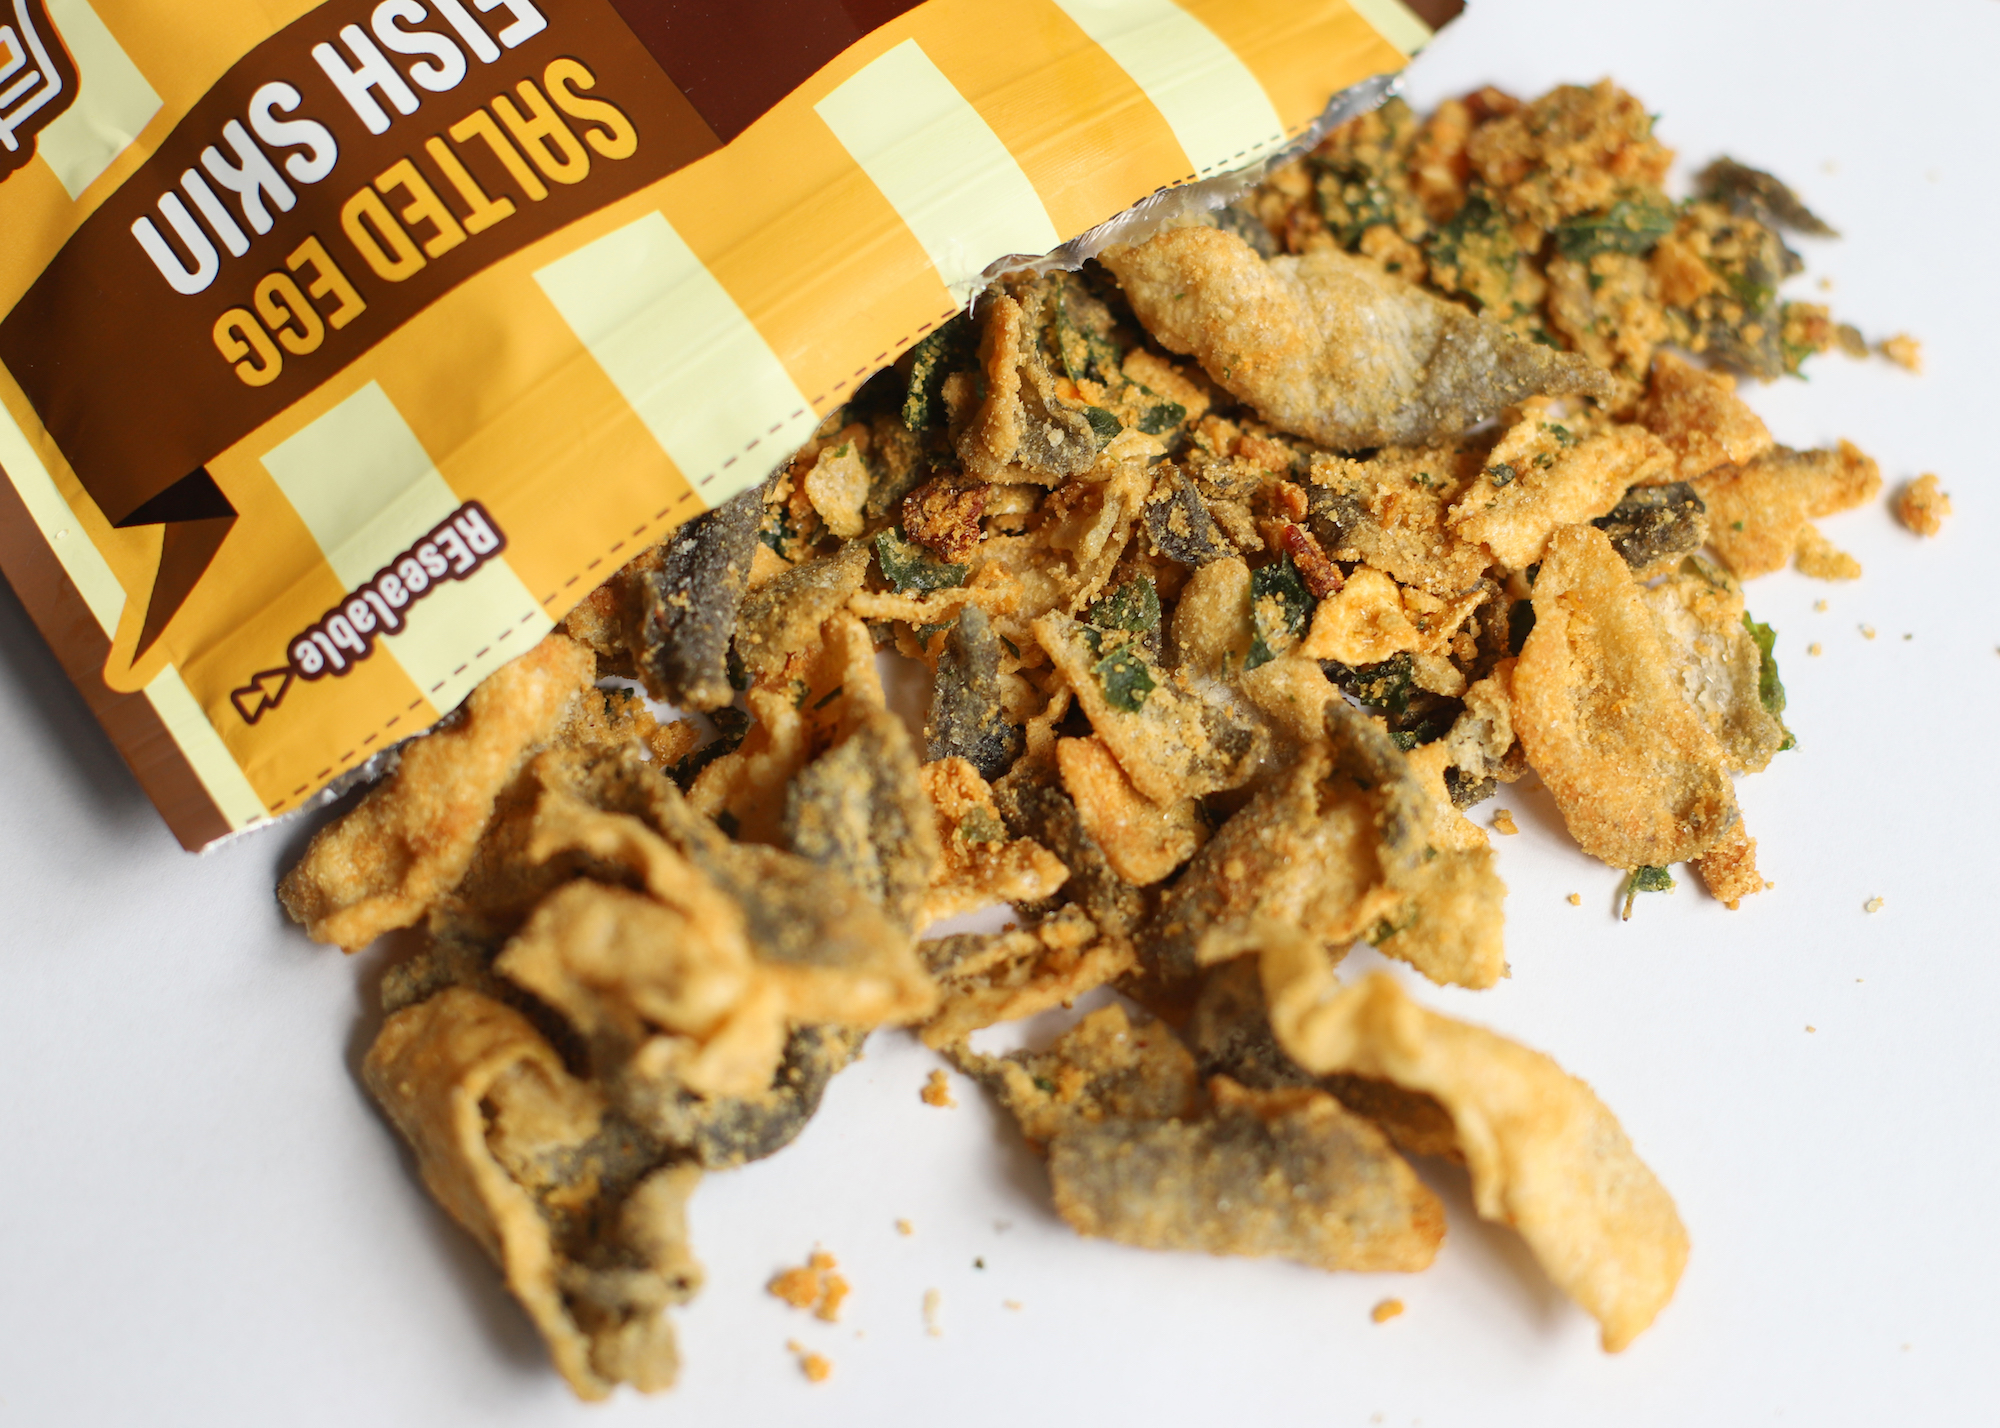 crusty's salted egg fish skin snack